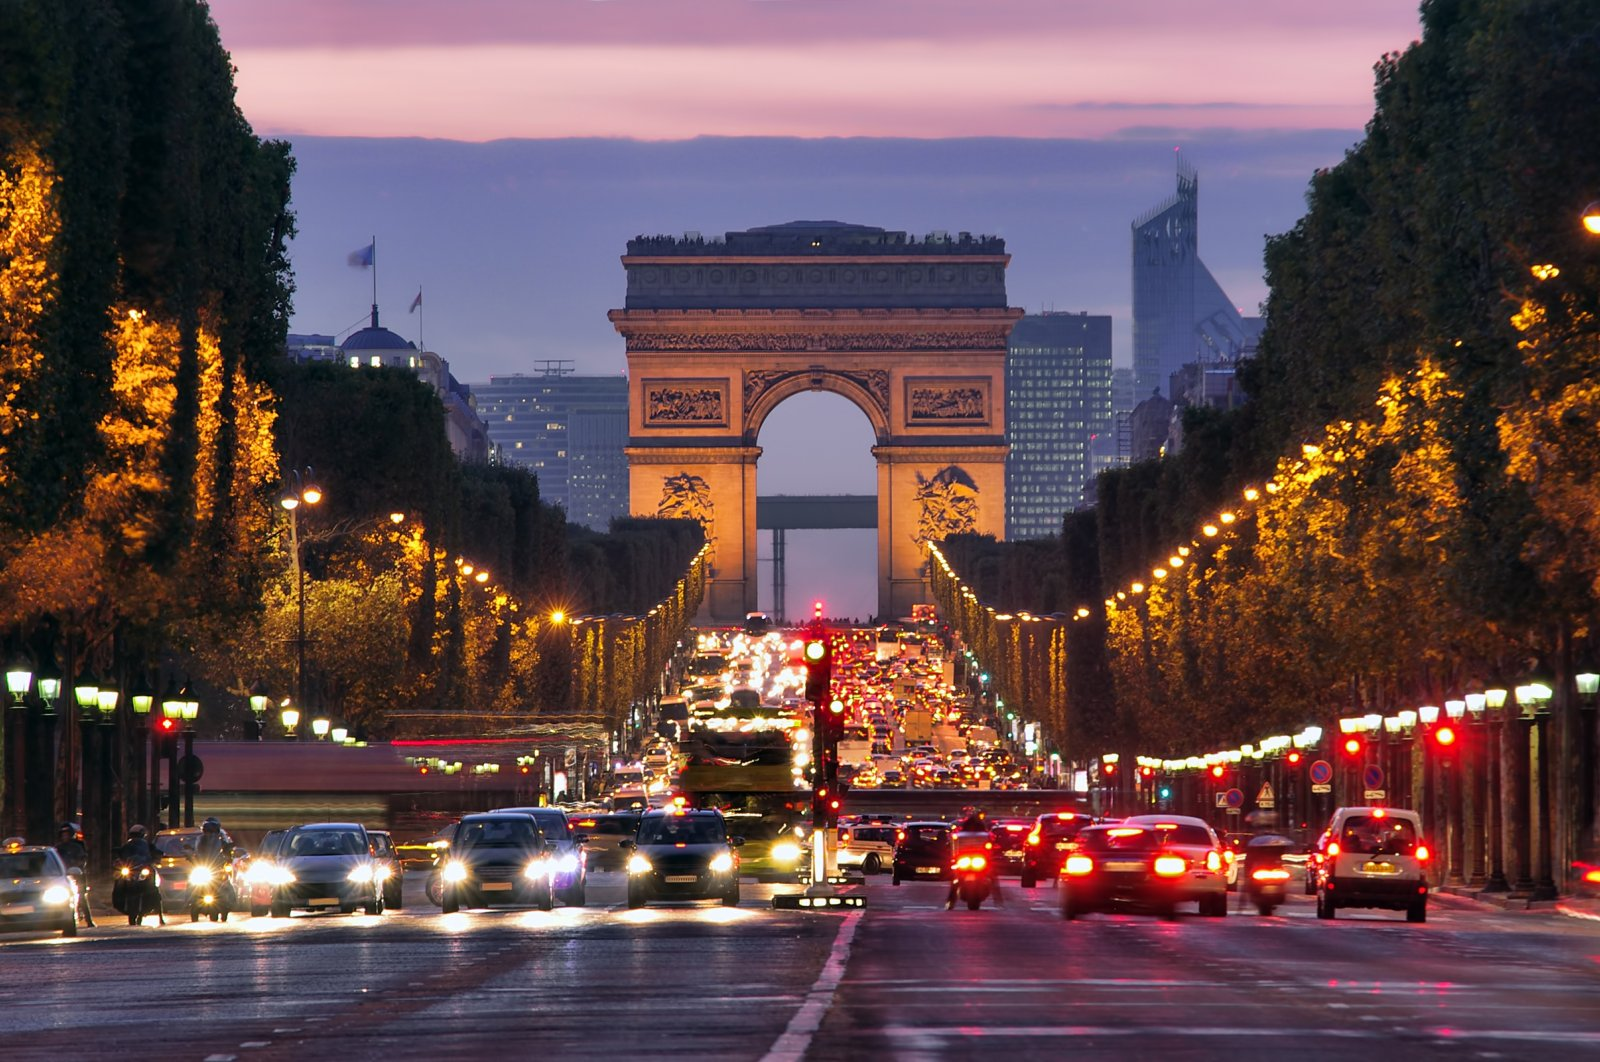 Champs-Elysees at night, Paris, France. (Shutterstock Photo)